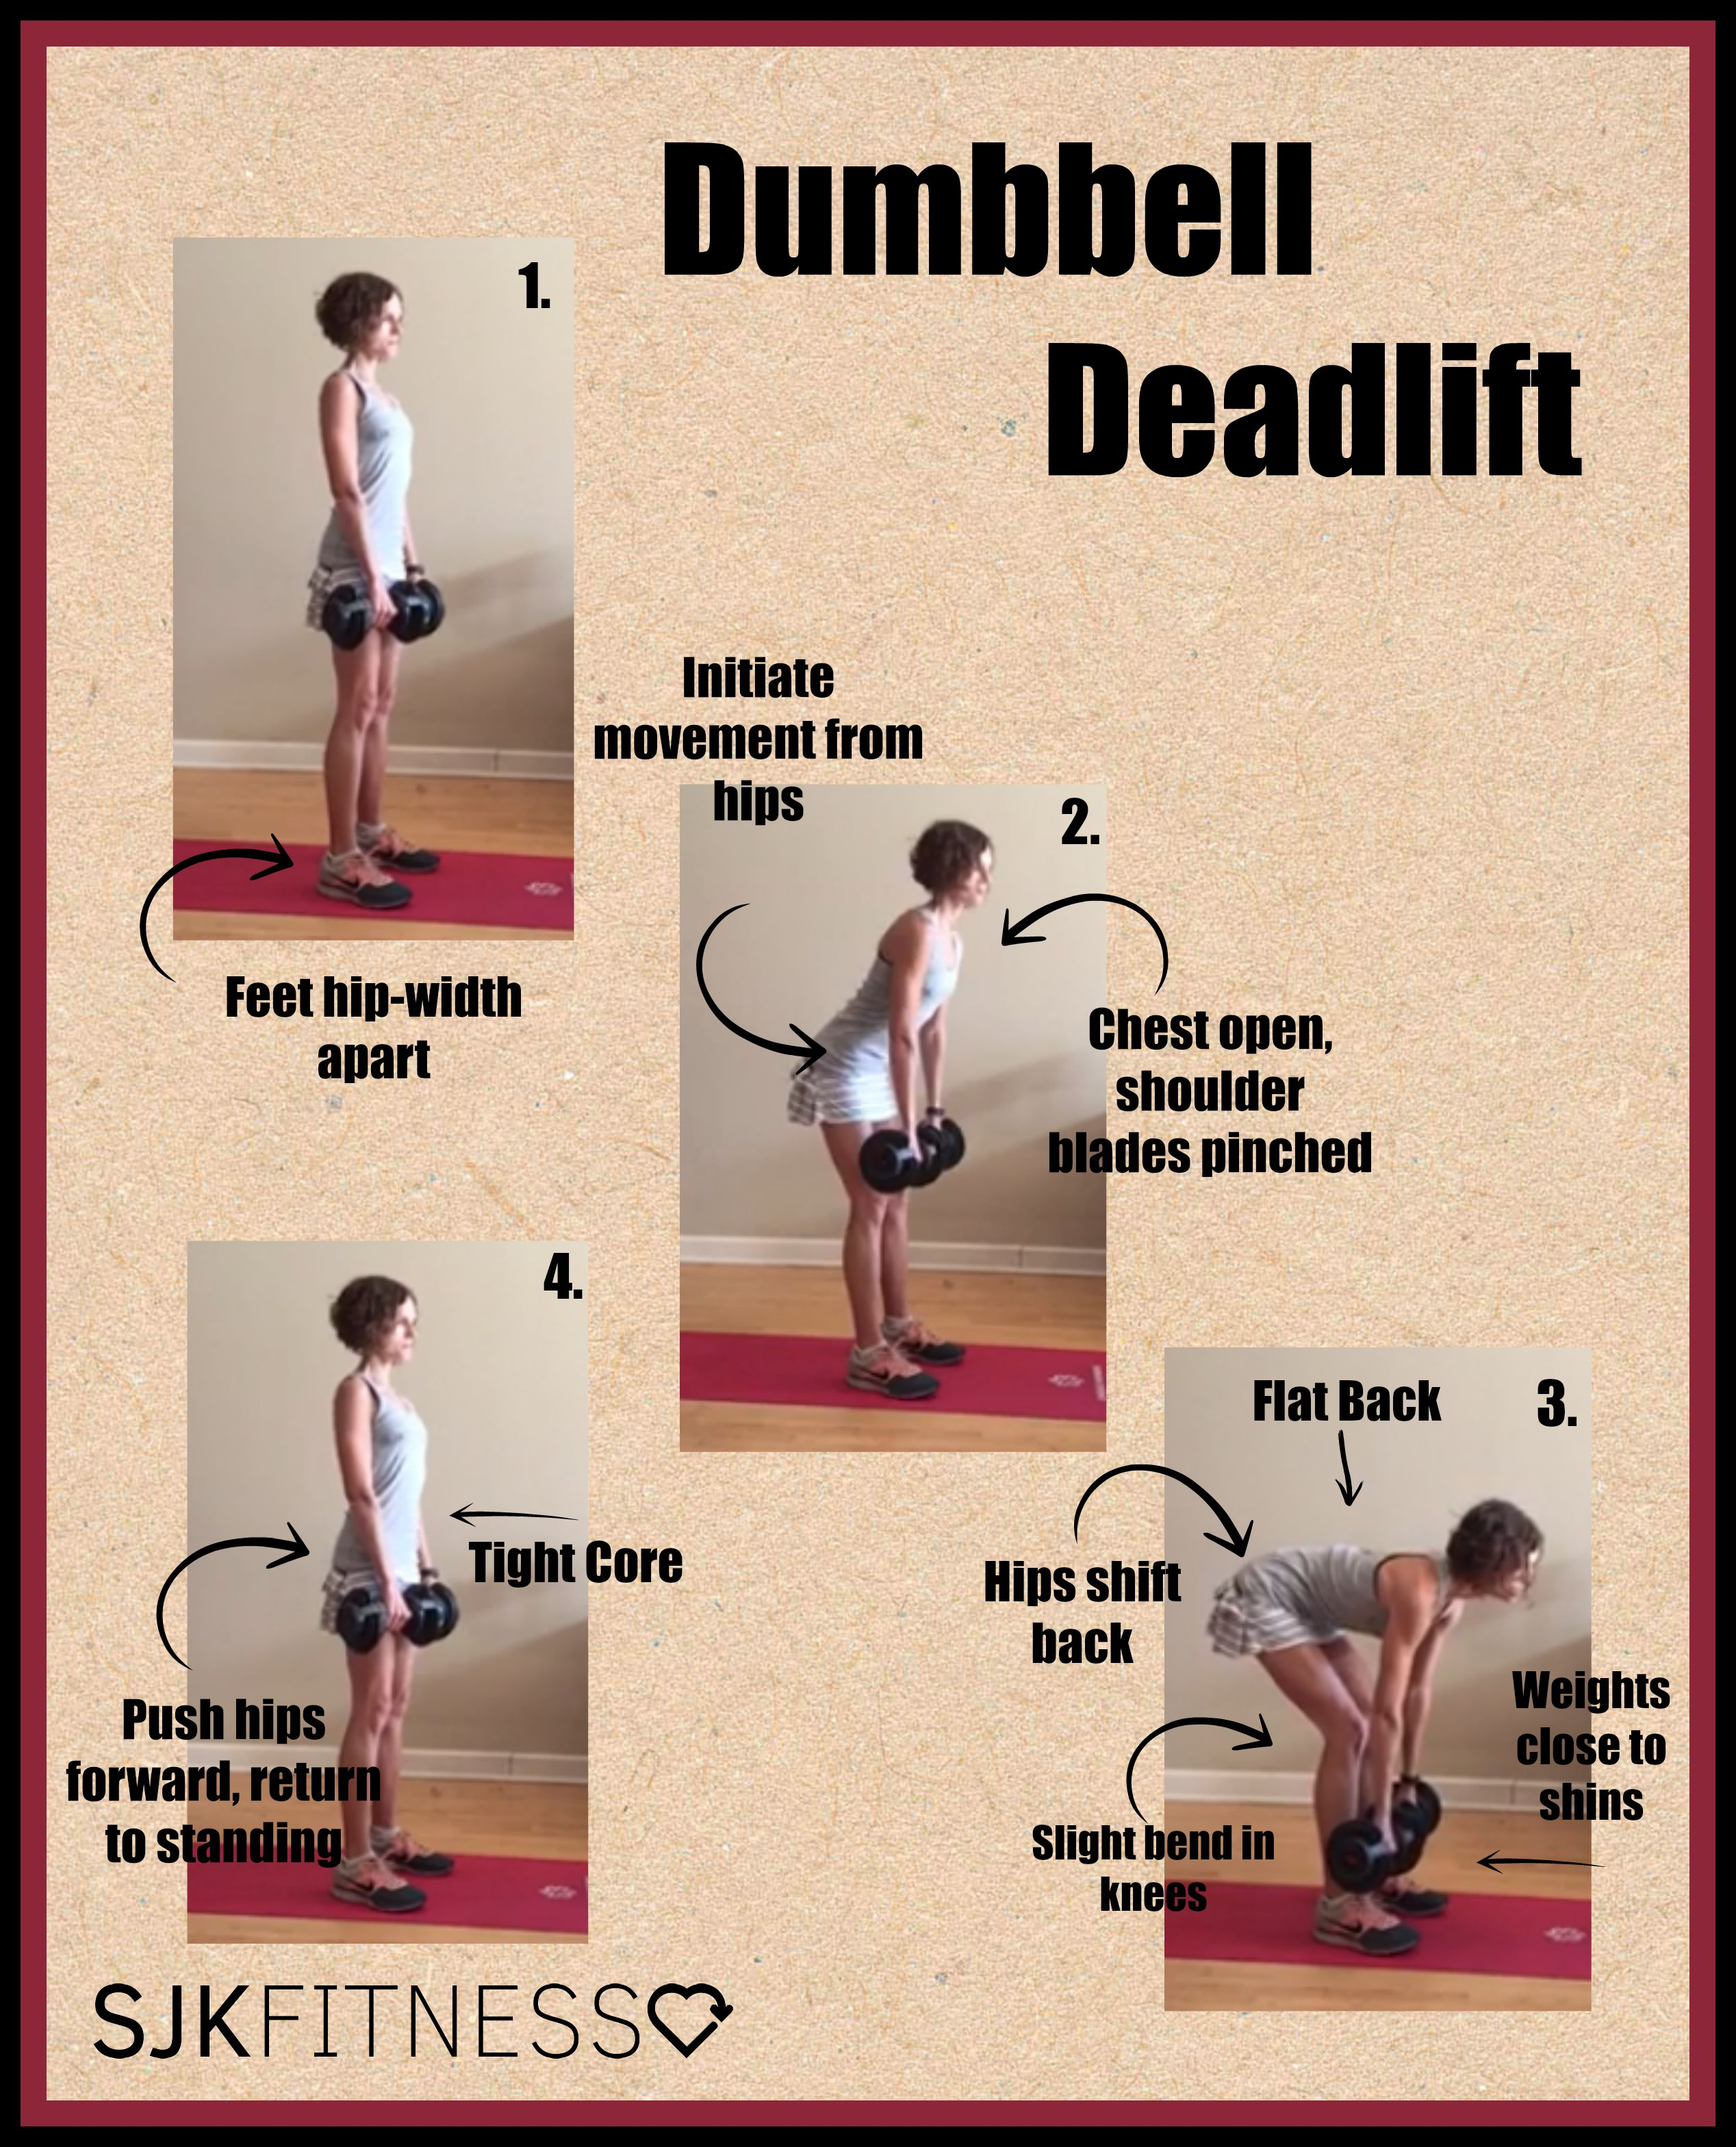 Dumbbell Deadlift Description